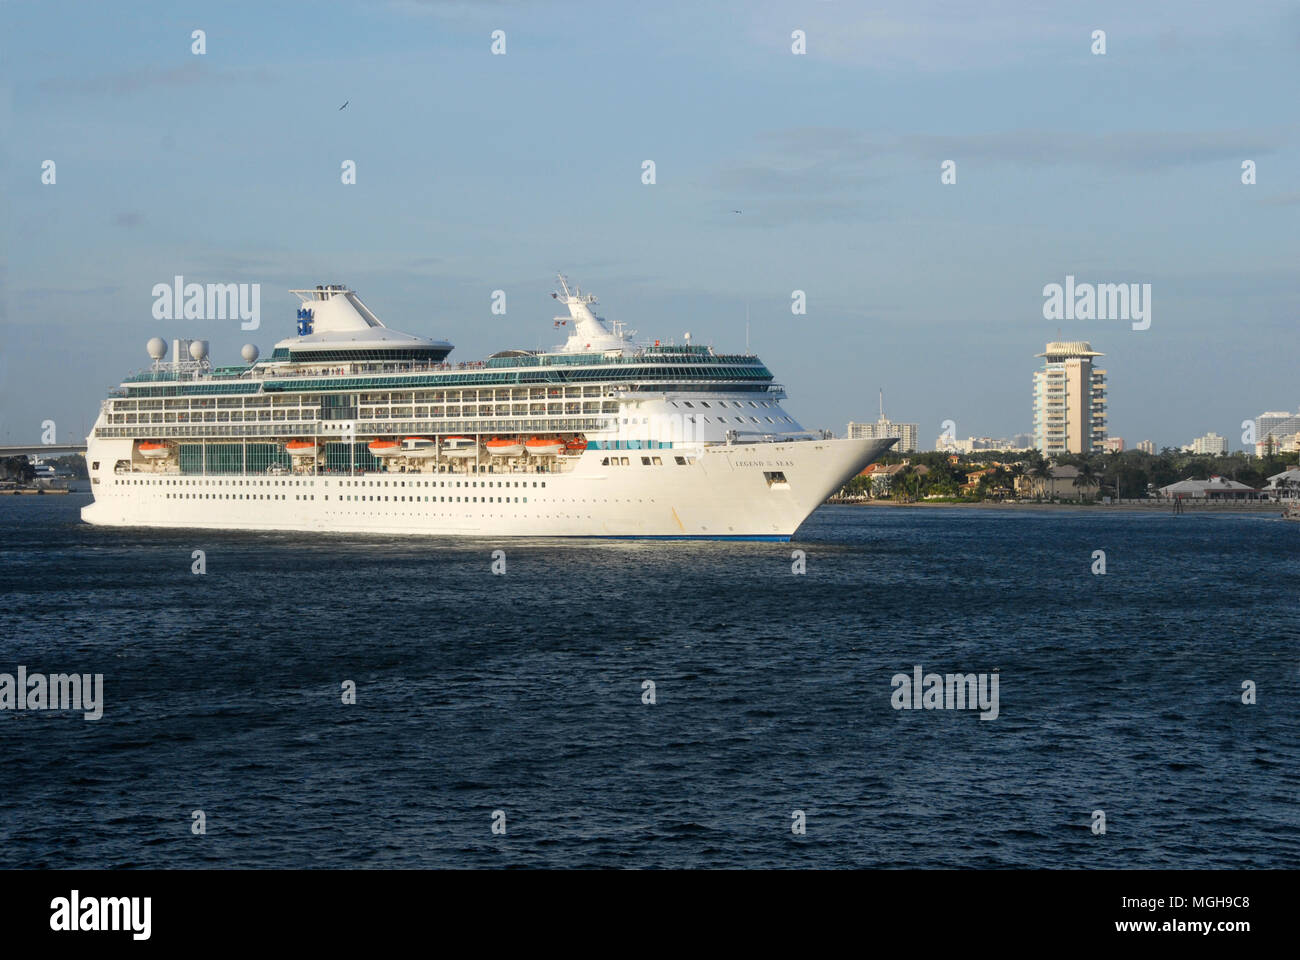 Cruise liner Legend of the Seas leaving Fort Lauderdale, Florida, USA - Stock Image